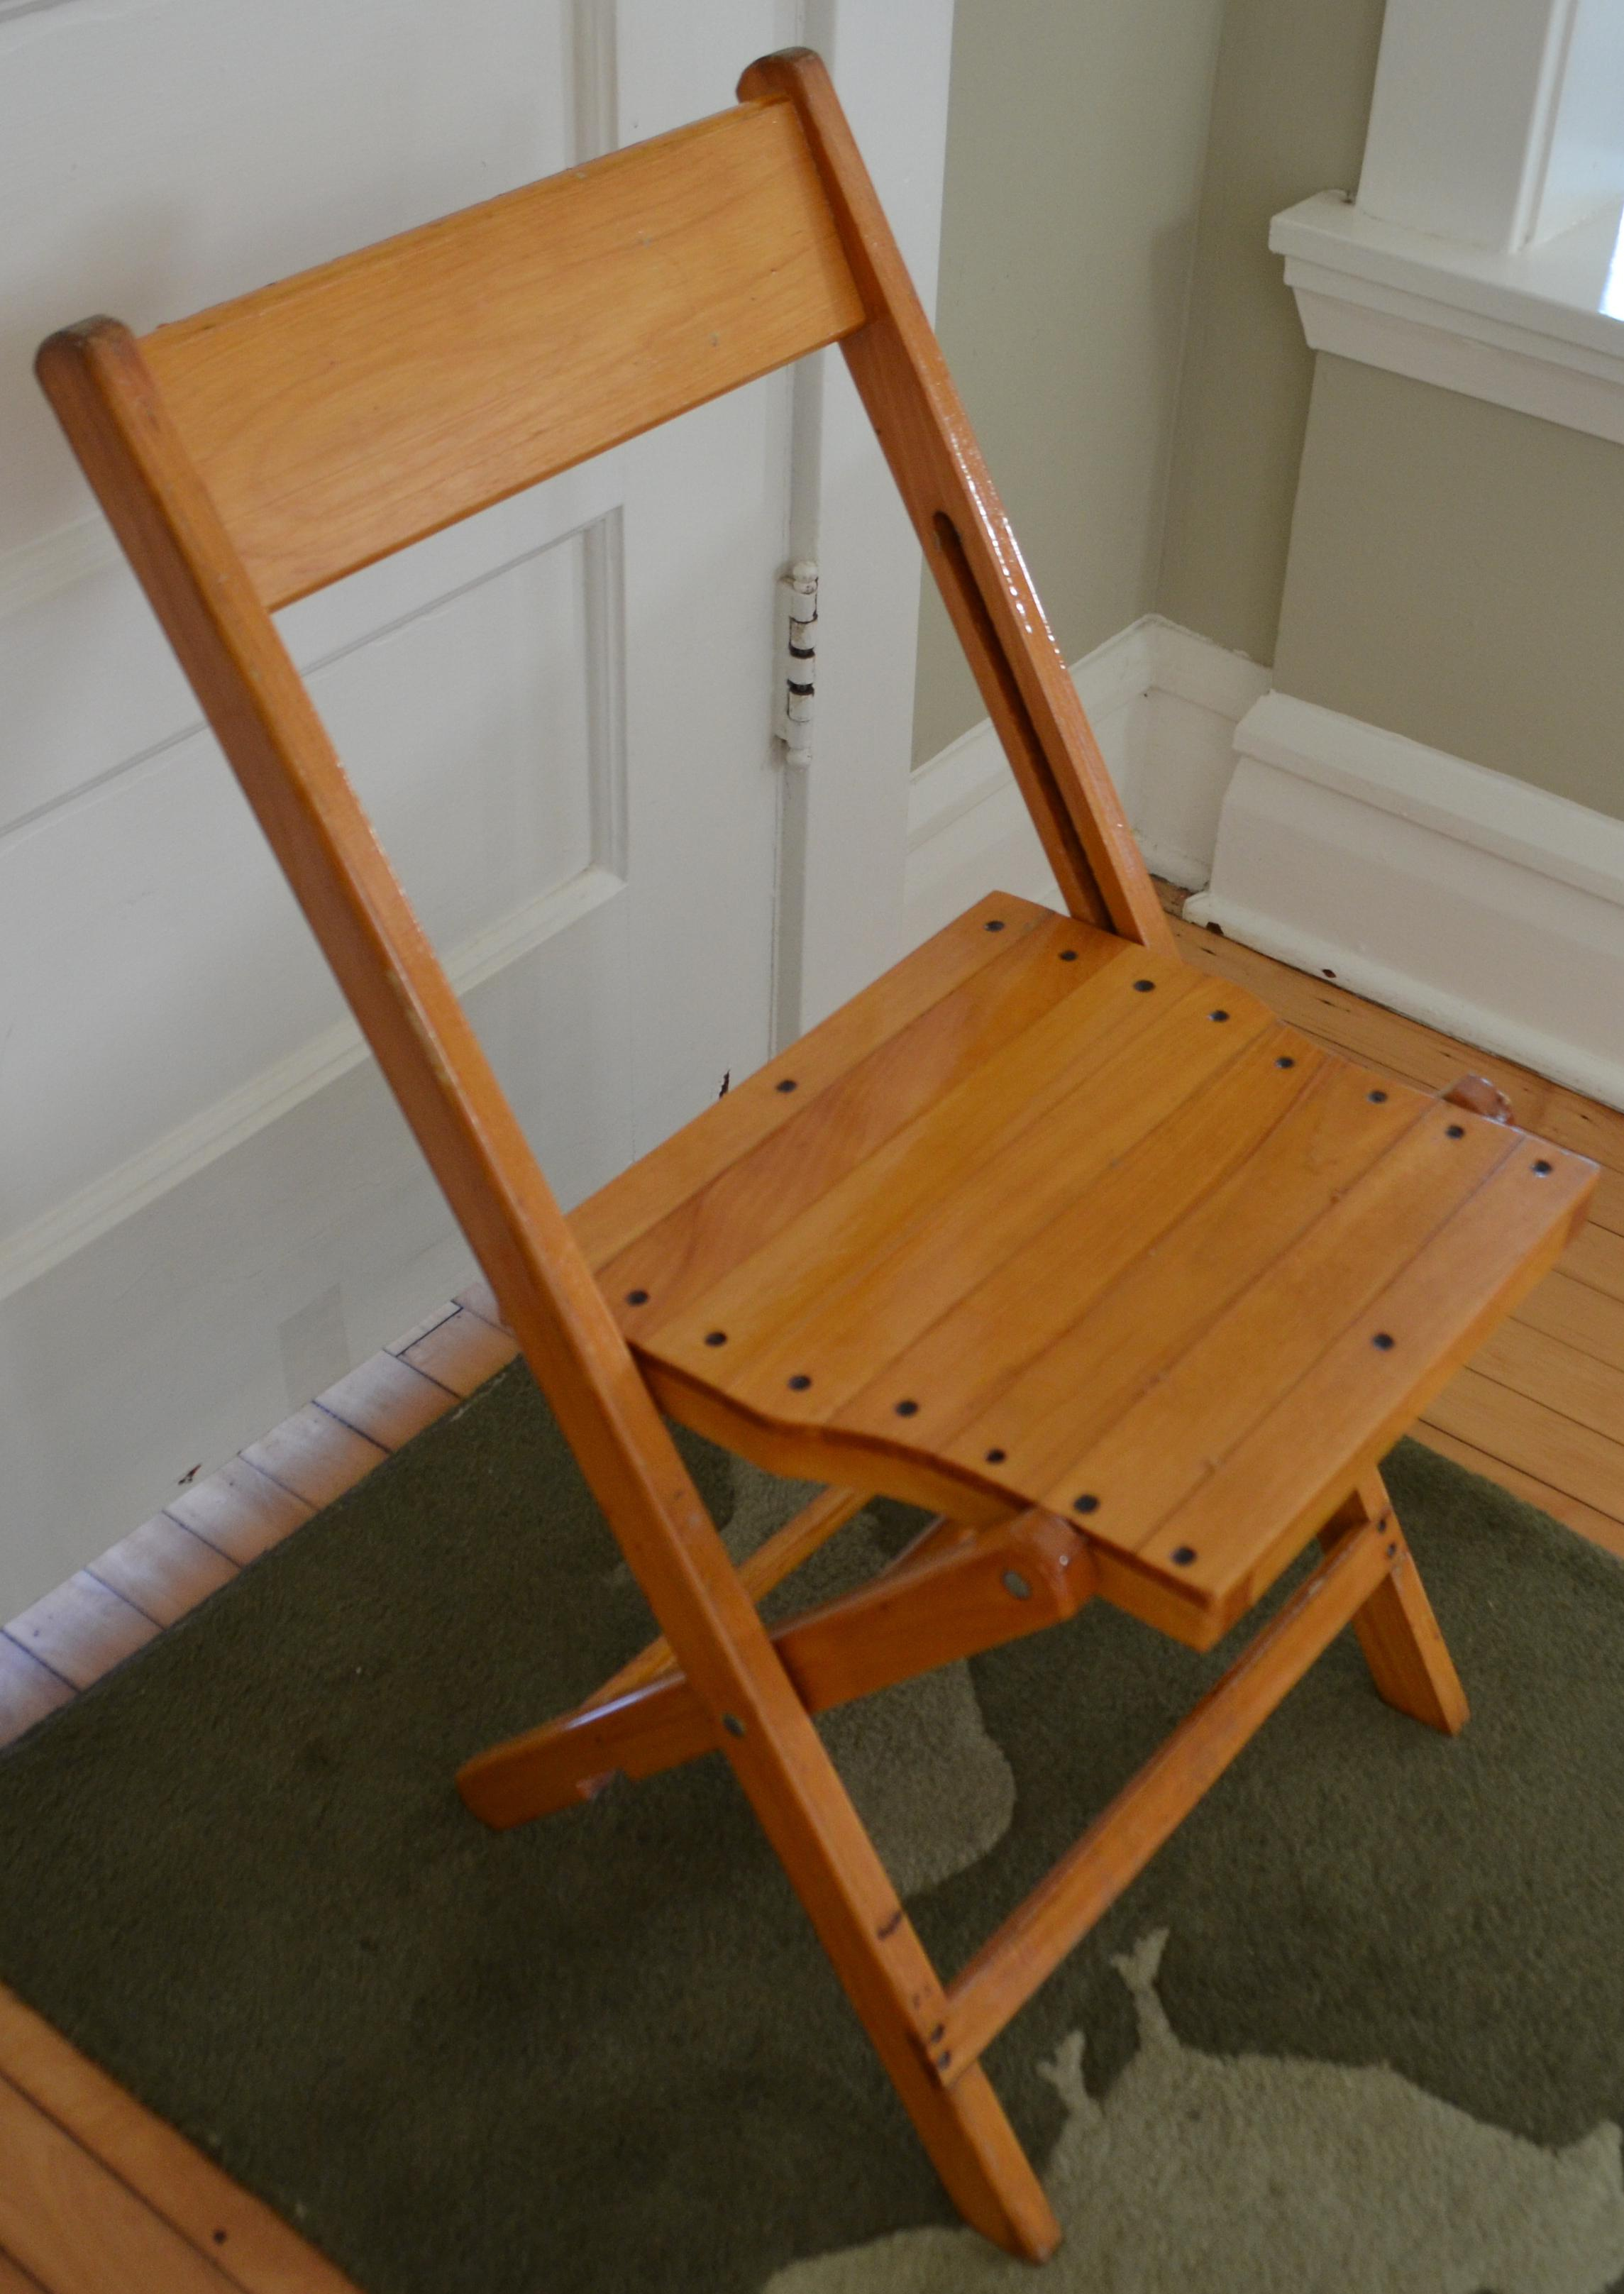 Set Of 4 Vintage Wood Folding Chairs; 35 Sets Available (Or 140 Chairs)